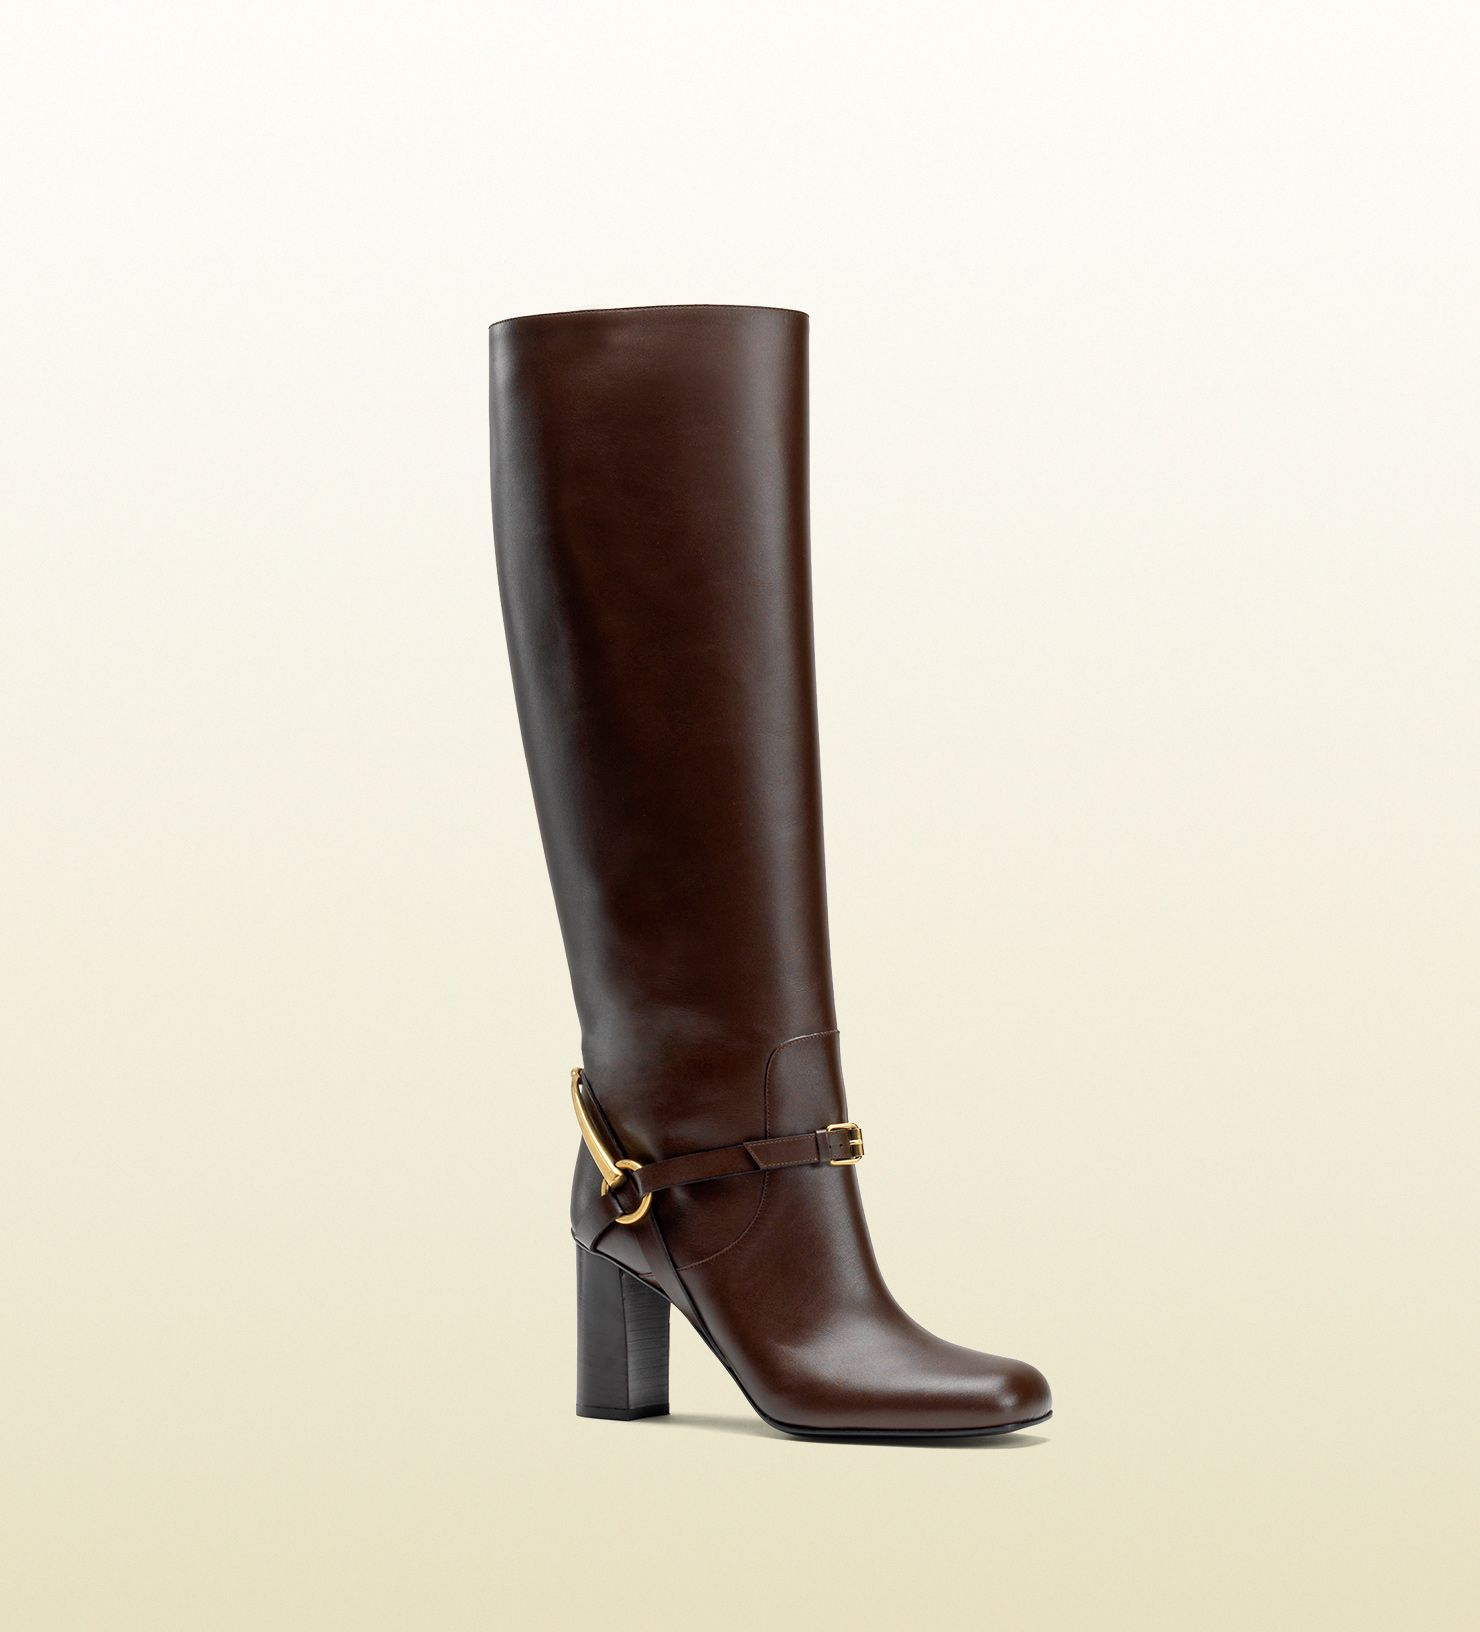 Ralph Lauren Collection Sahara Riding Boots in Black   Lyst